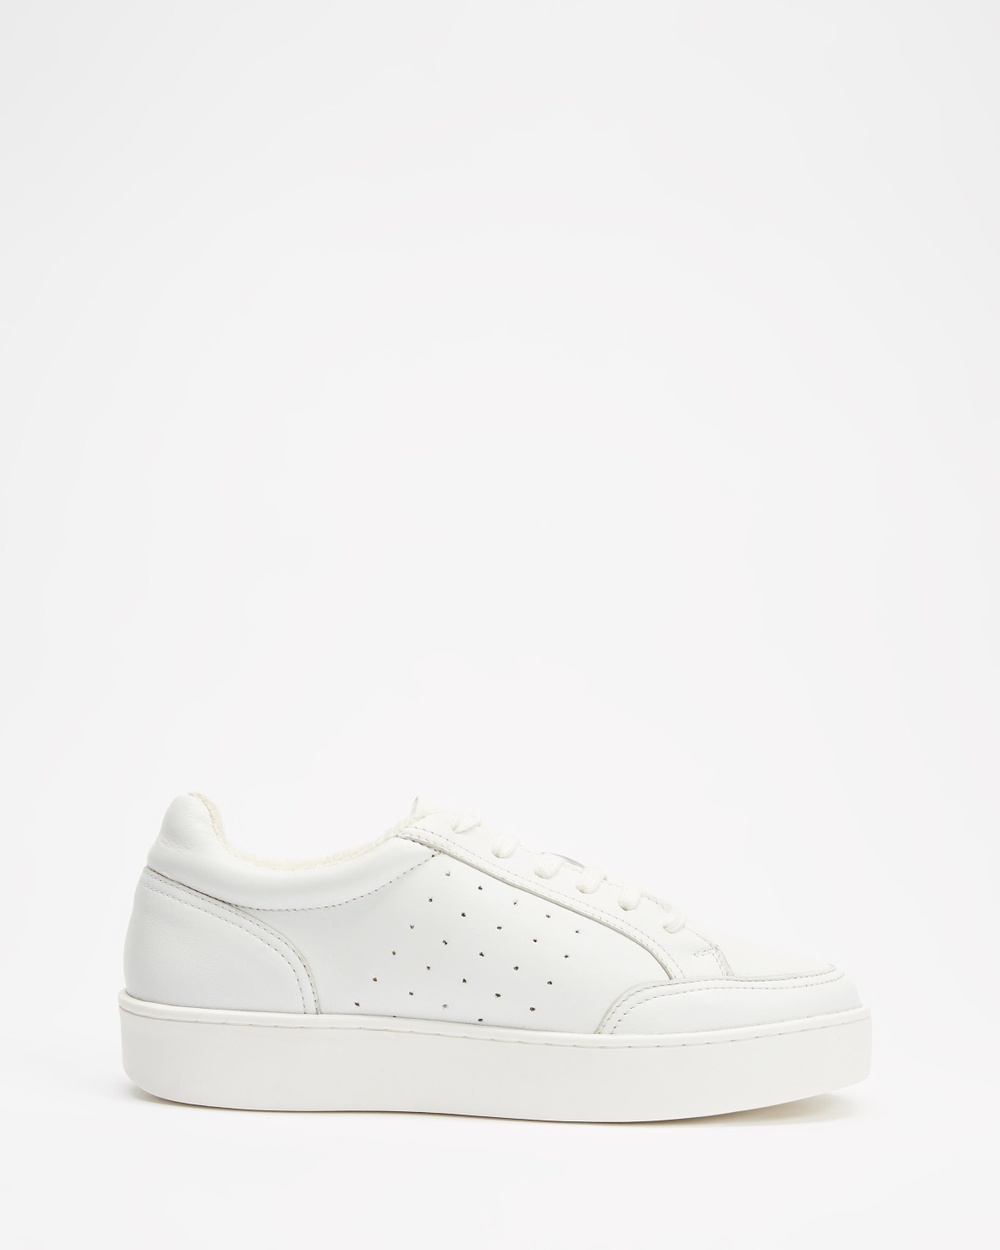 AERE Platform Leather Sneakers White Leather